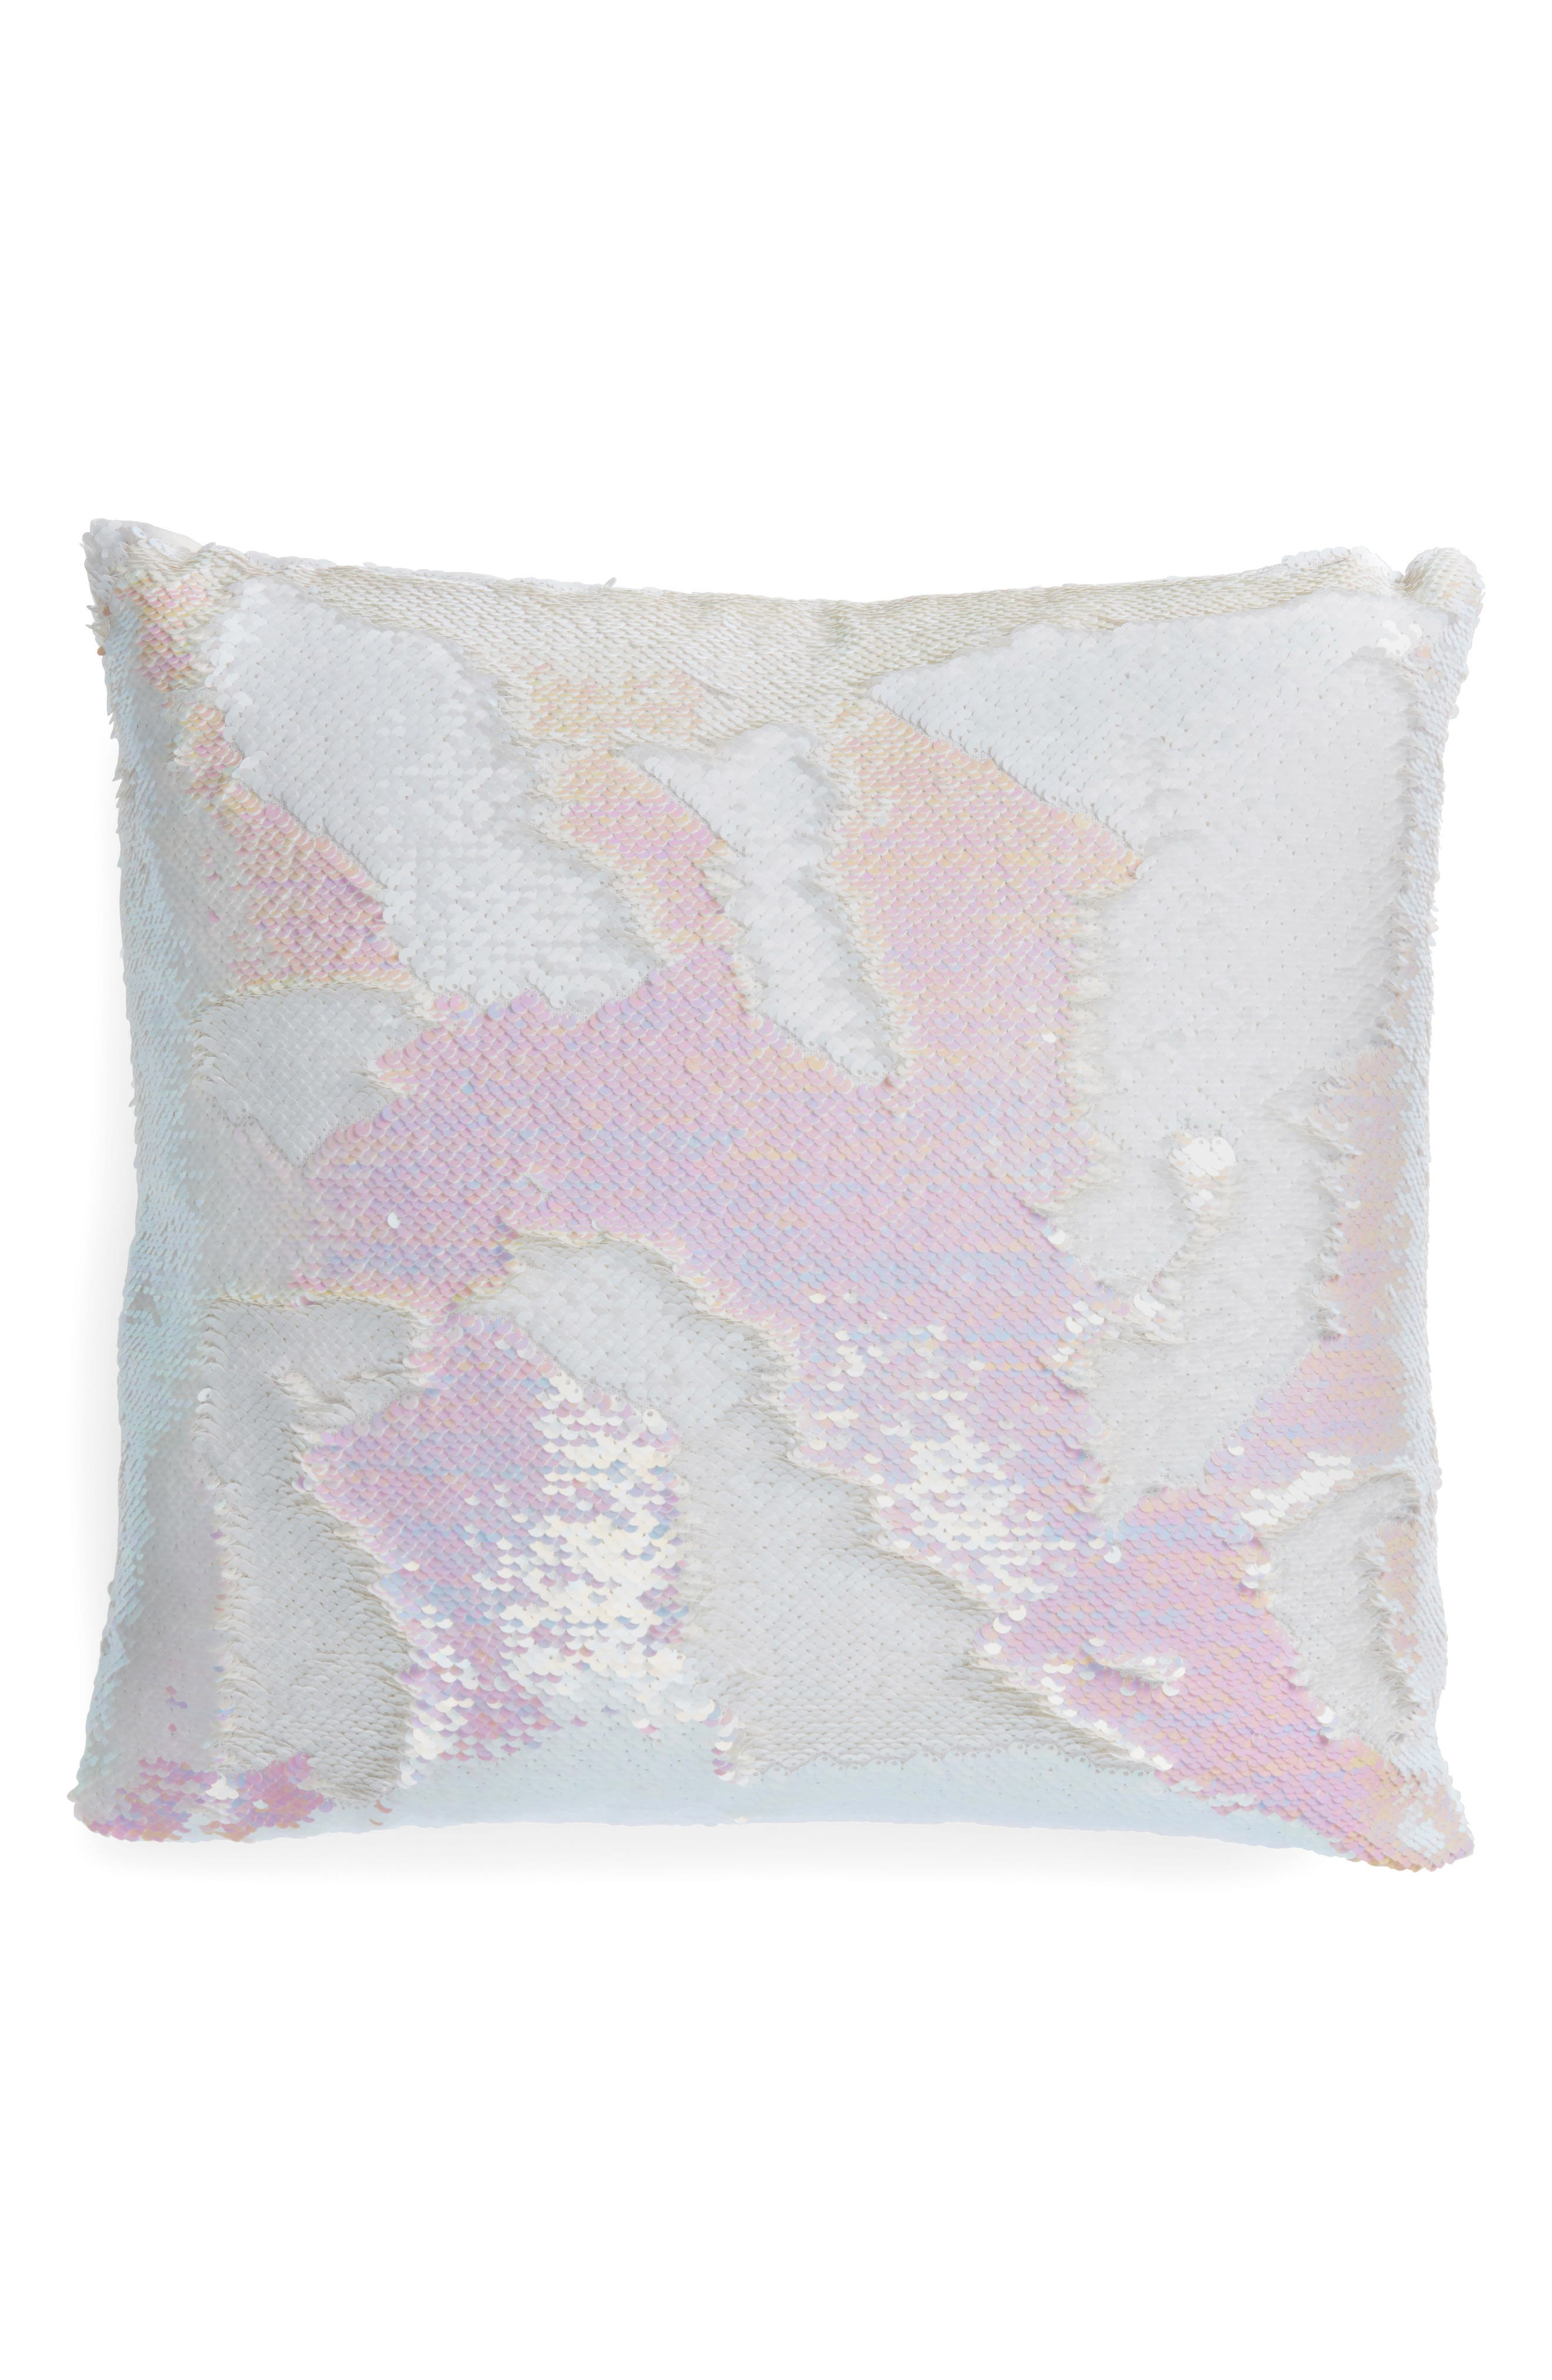 Iridescent Sequin Accent Pillow,                         Main,                         color, Ivory